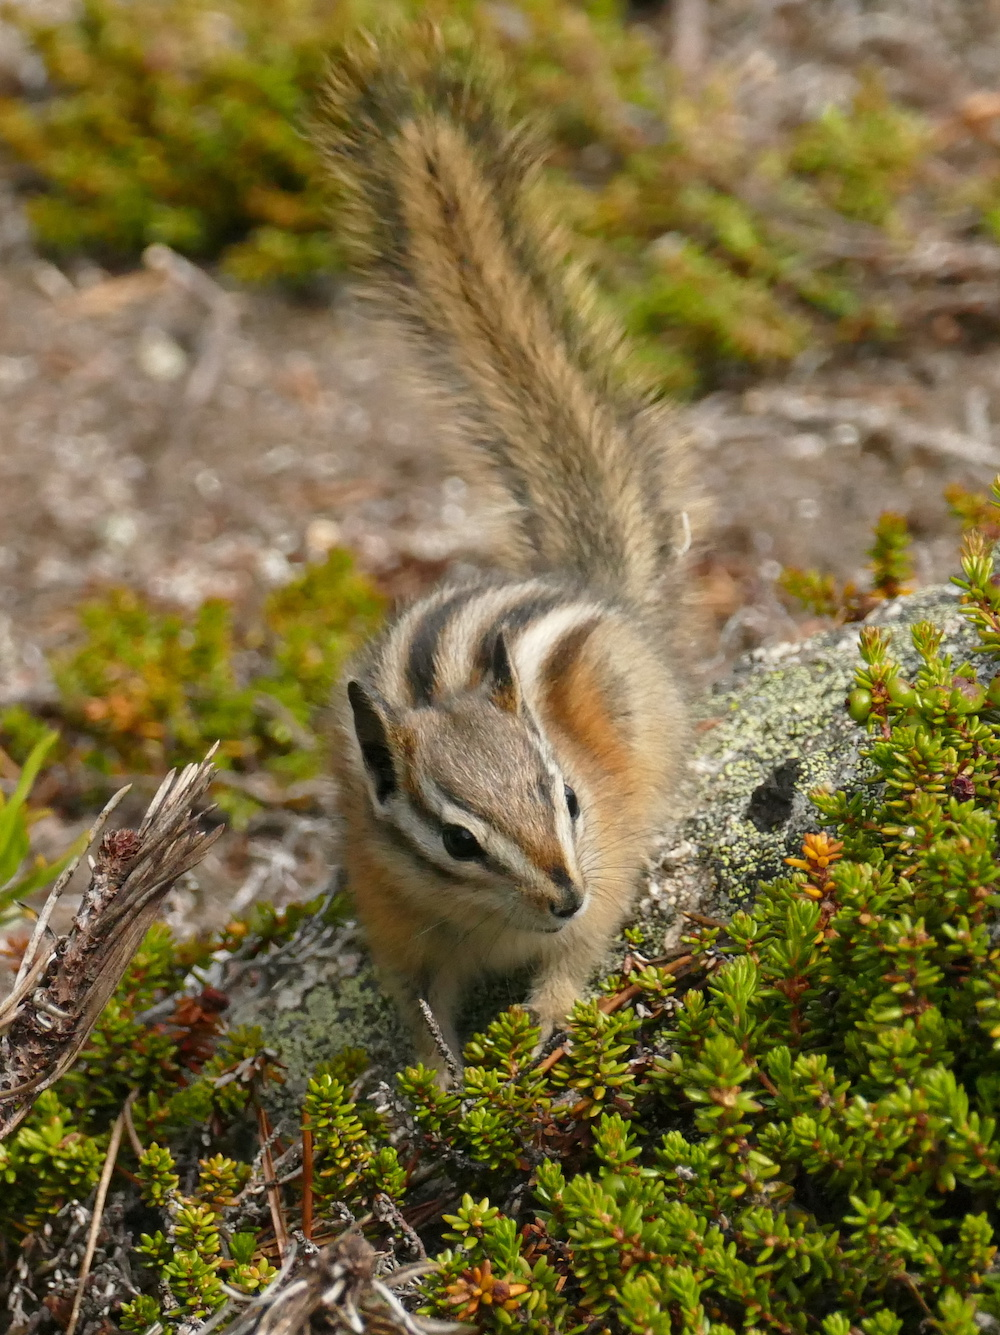 Striped ground-squirrel © Melanie Marchand